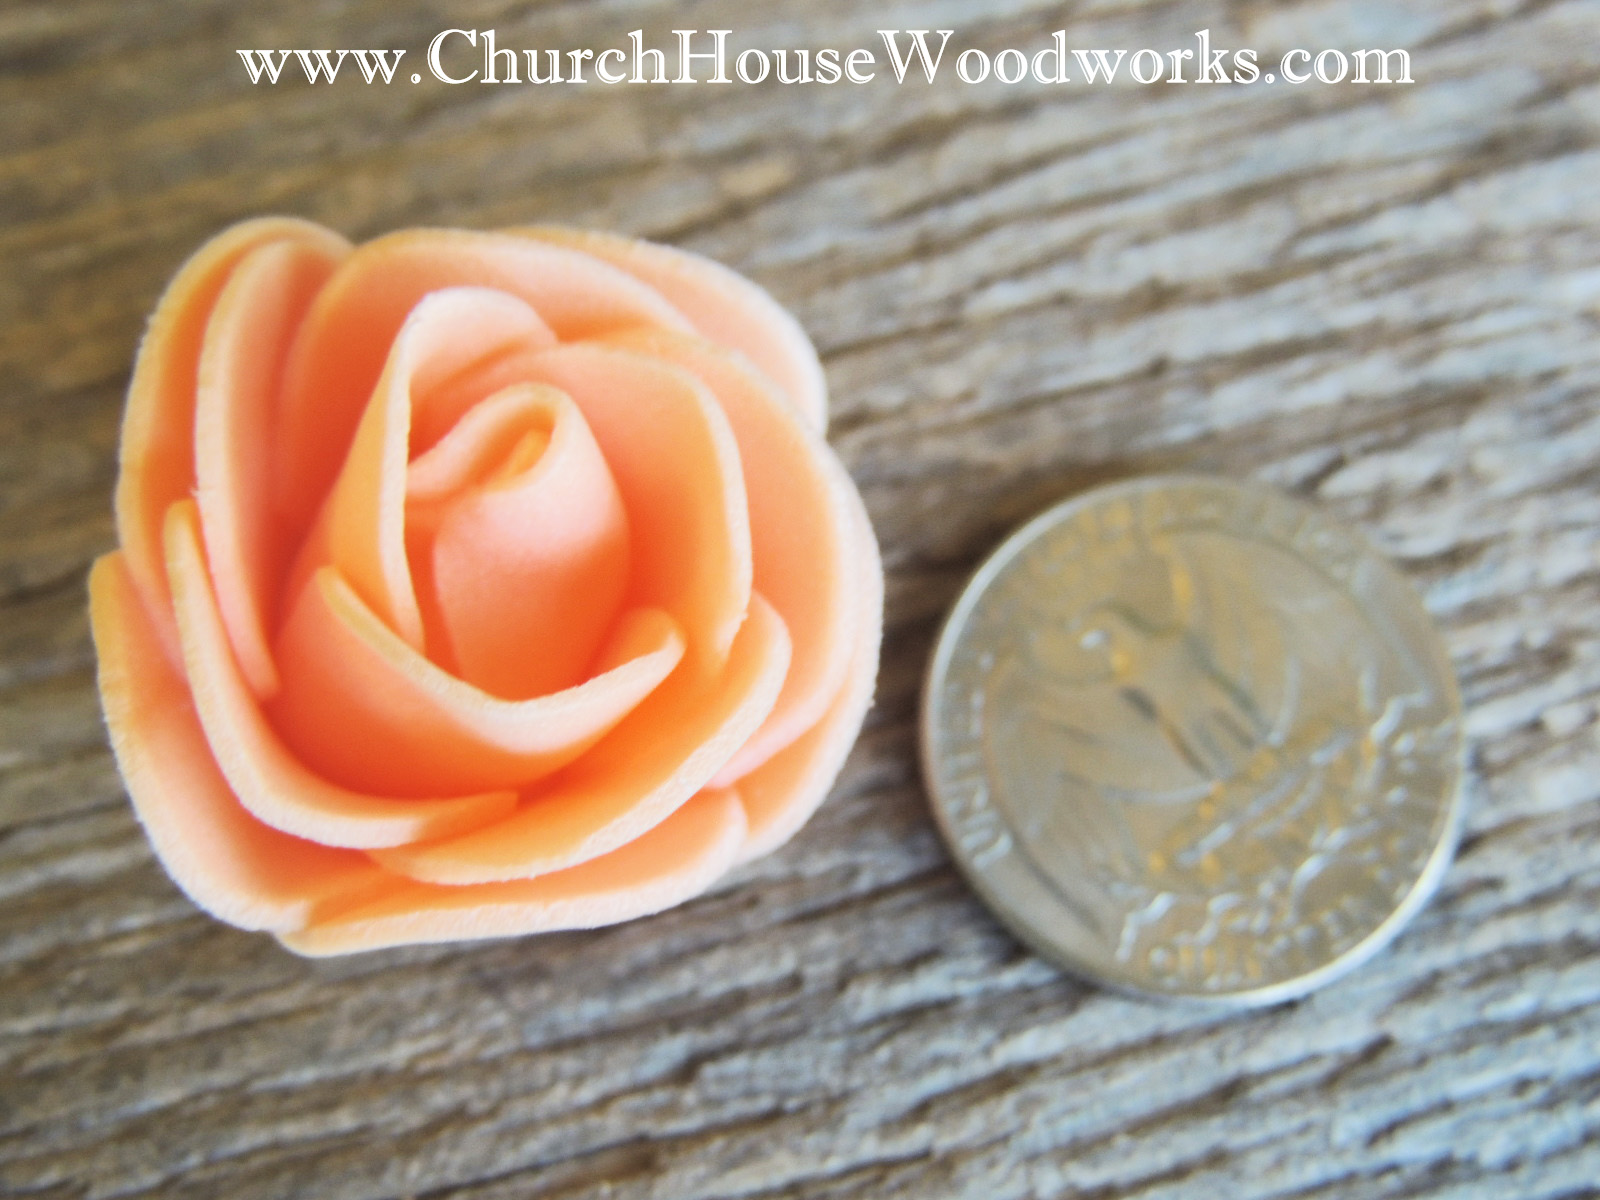 Home bulk roses peach roses - Pastel Blue Pink Sherbert Orange And Mint Green Foam Roses Table Scatter